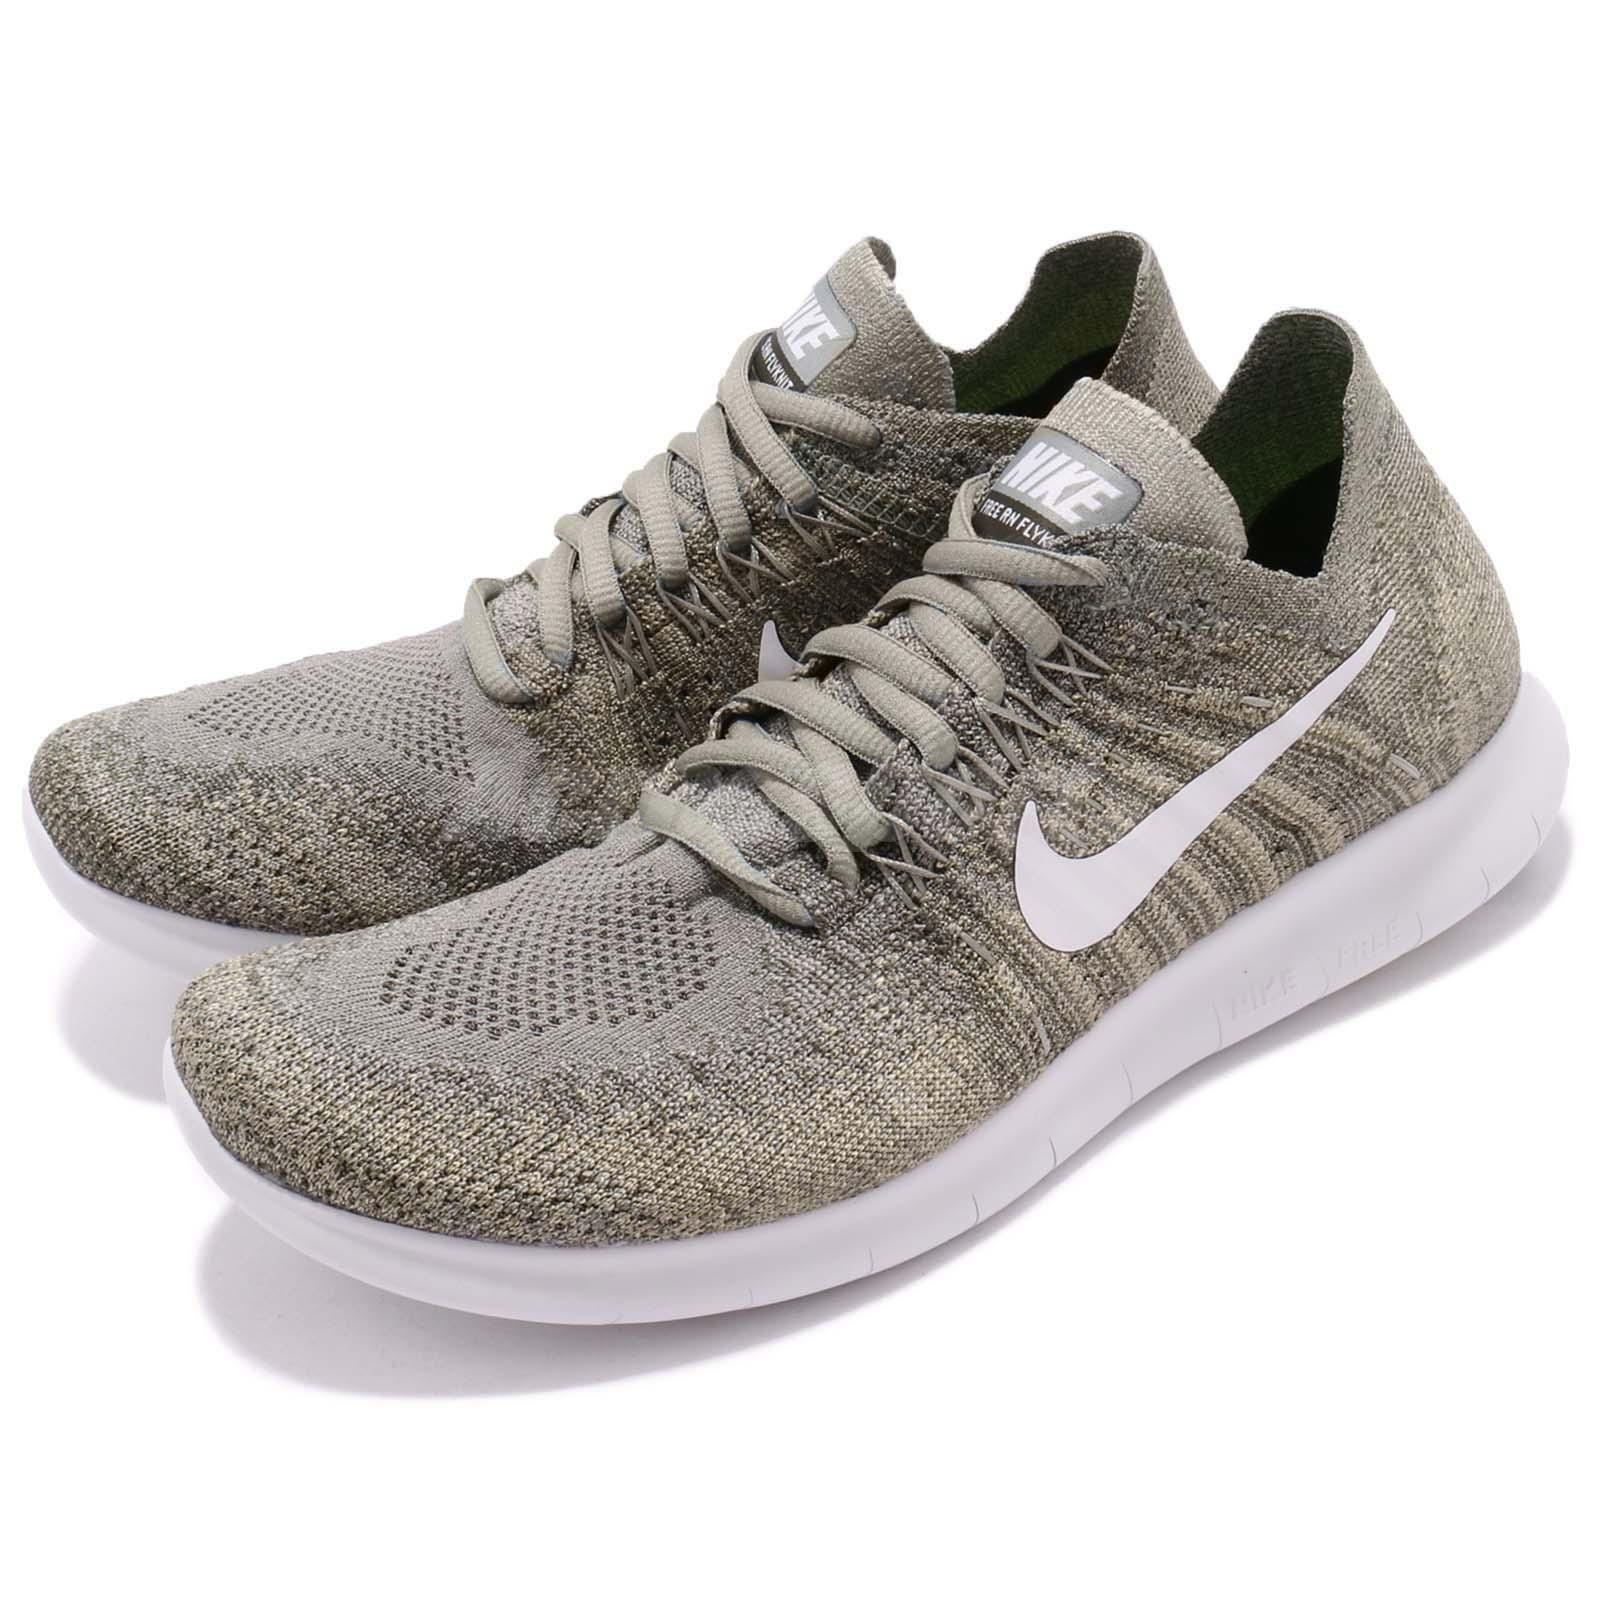 5667c57e2898 Details about Wmns Nike Free RN Flyknit 2017 Dark Stucco Grey Women Running  Shoes 880844-008